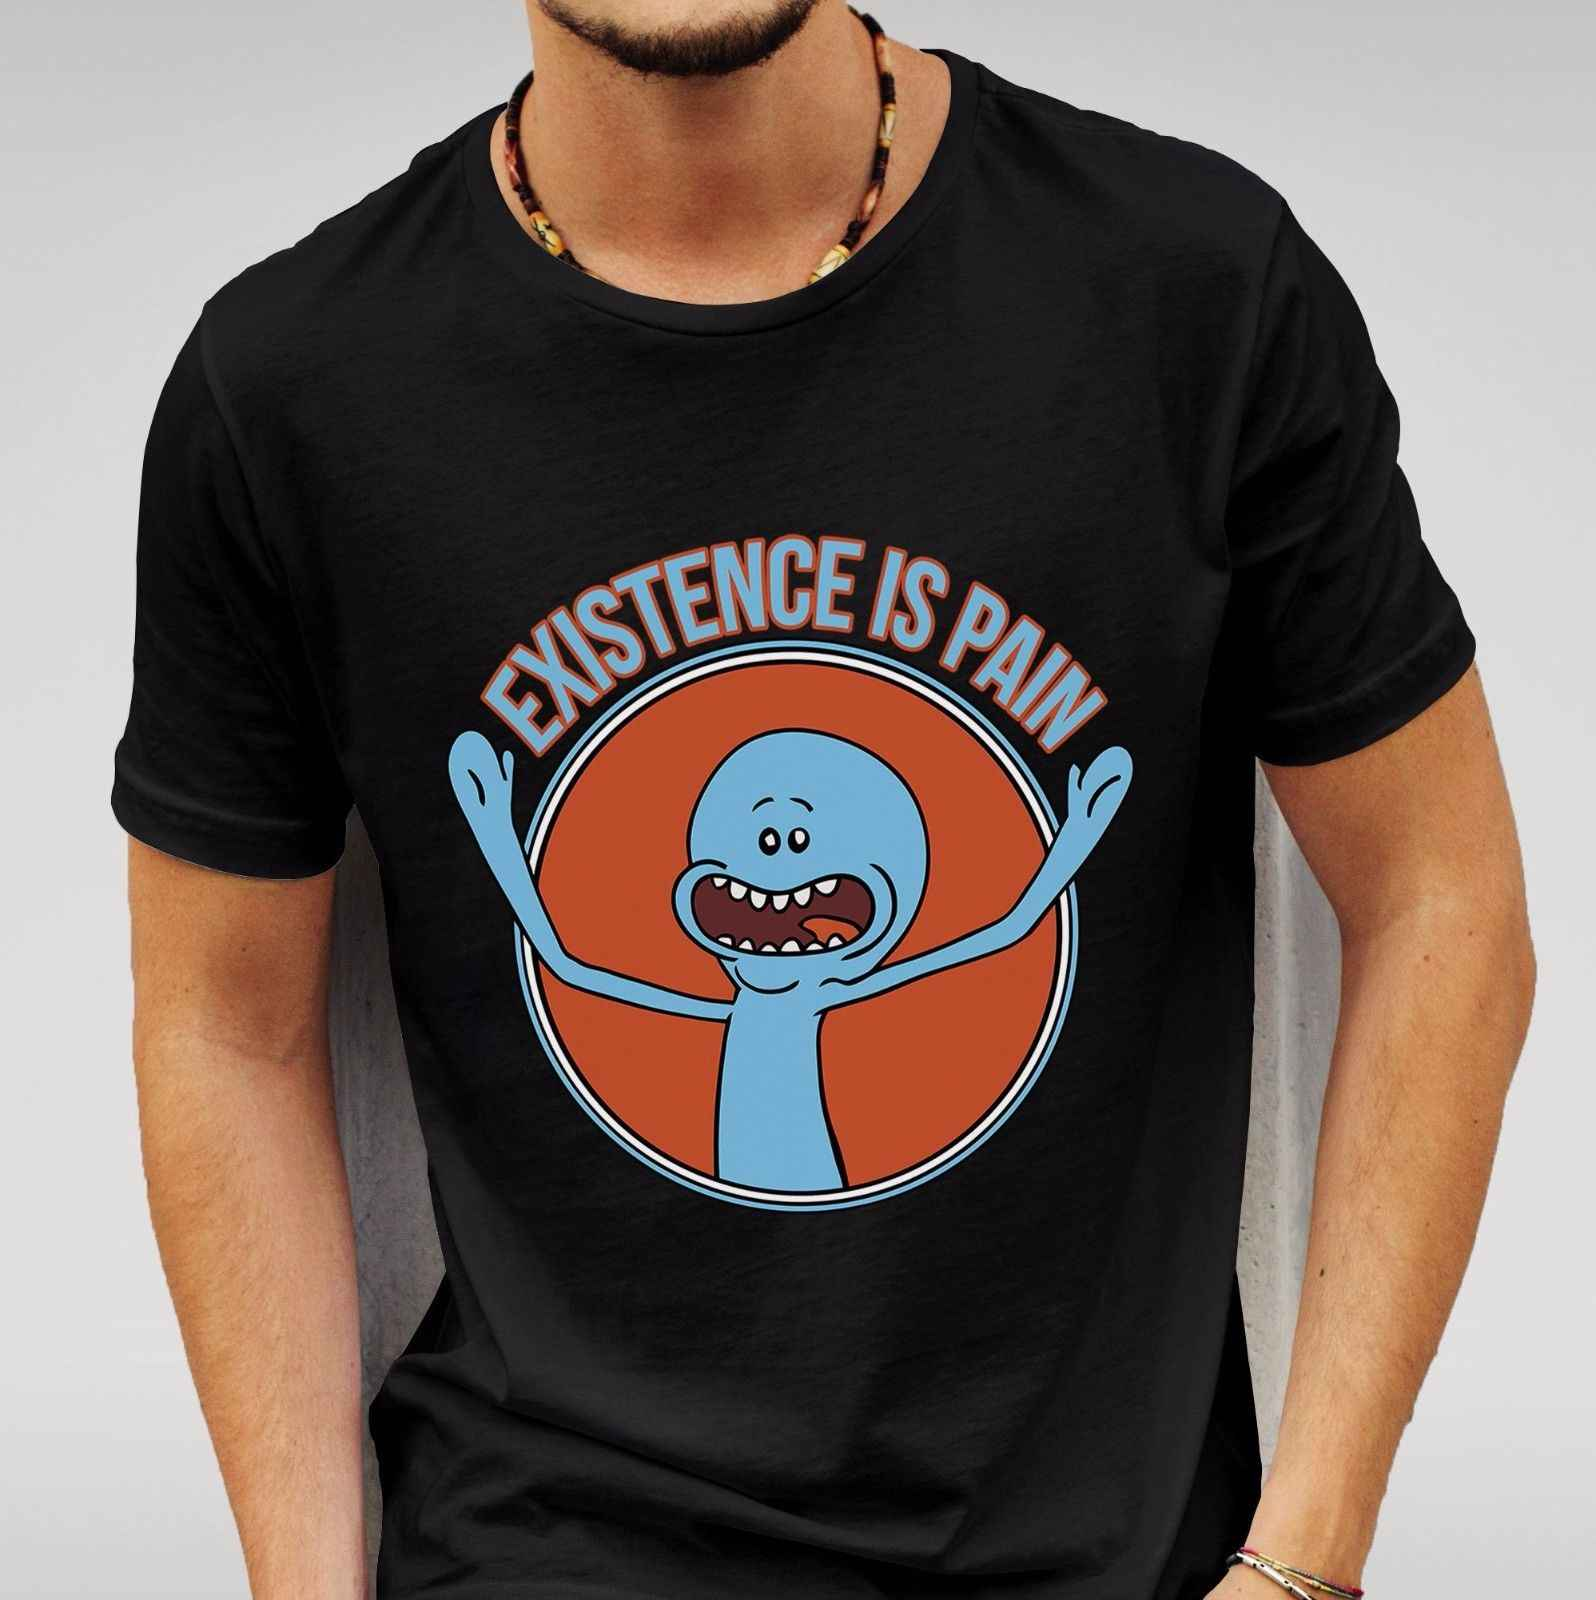 Ri en Morty Mr Meeseeks Bestaan is Pijn Bla Tshirt Mens Womens Unisex Gratis verzending Harajuku Tops t-shirt Fashion classic